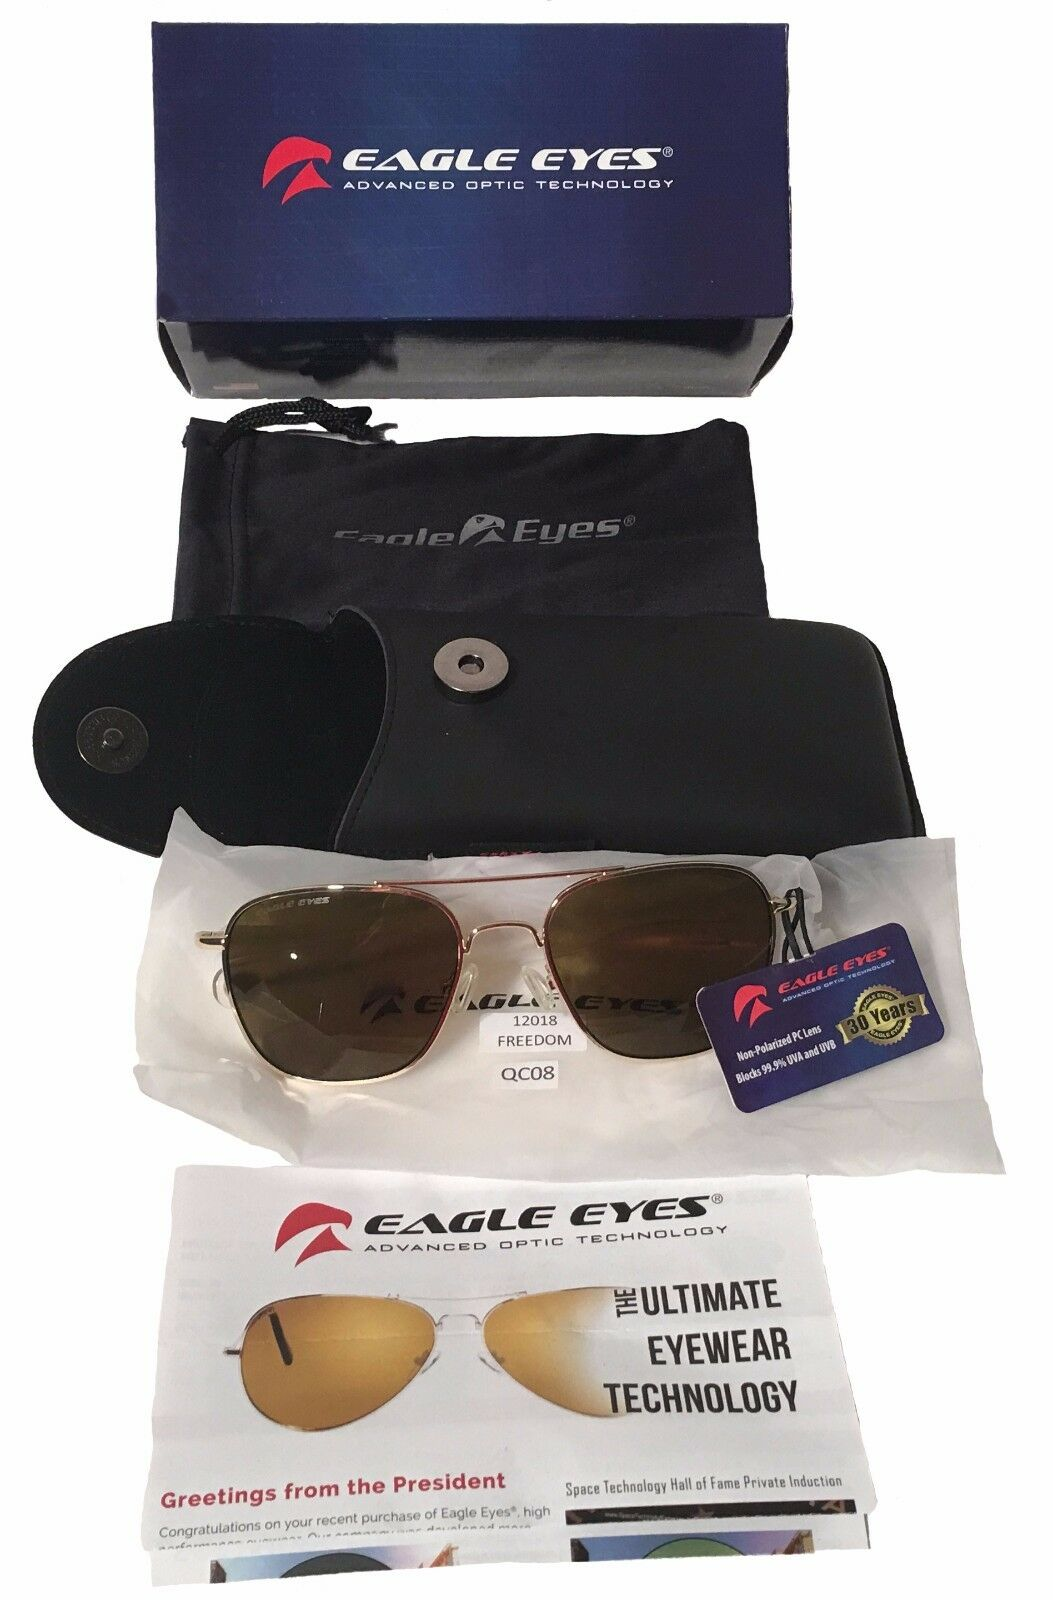 Eagle Eyes Innovative Optic Technology Aviator Sunglasses Pilots + USAF USM USN